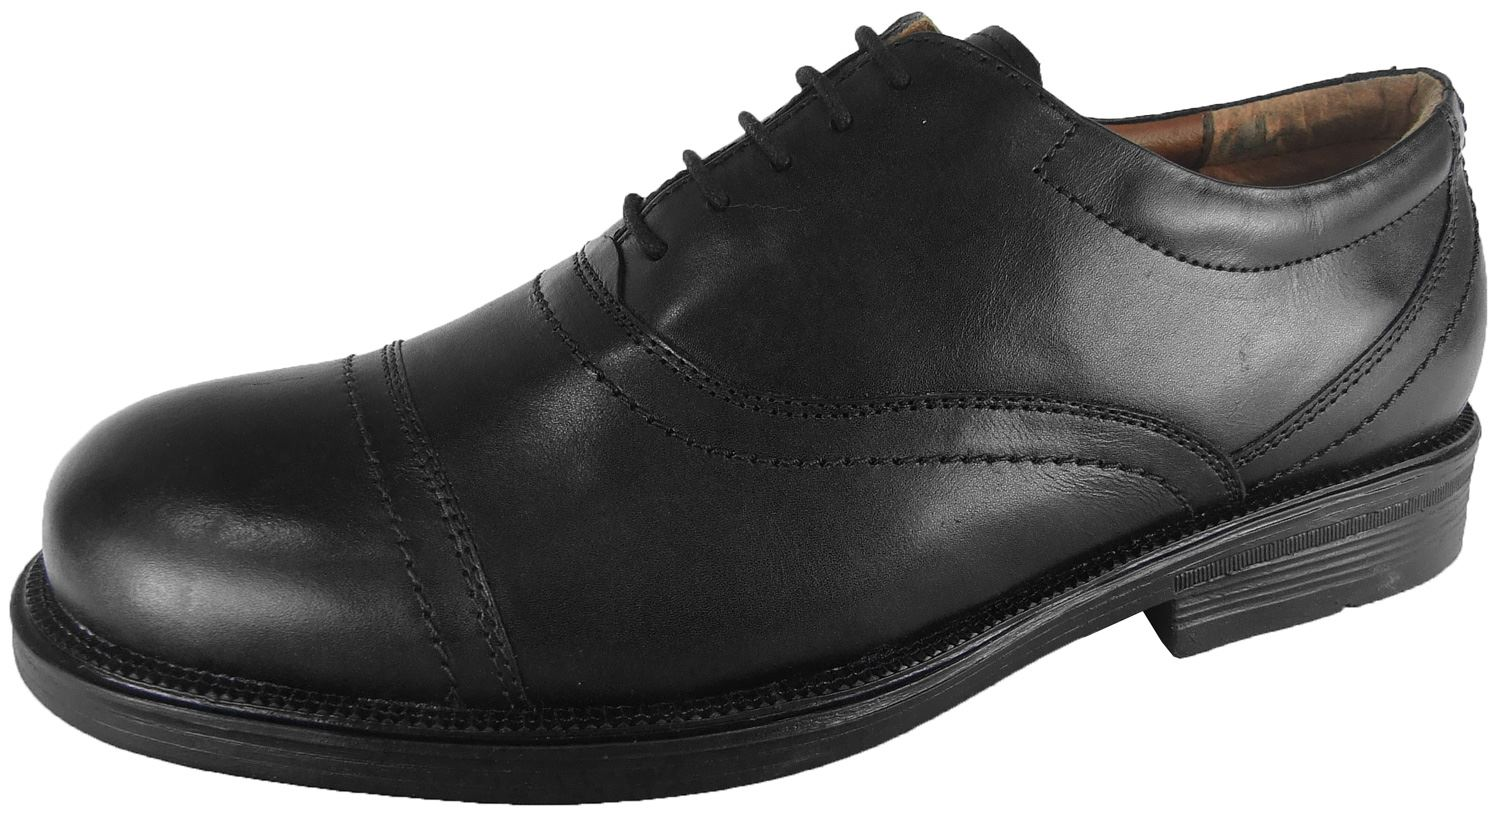 mens black leather smart formal dress oxford shoe size 6